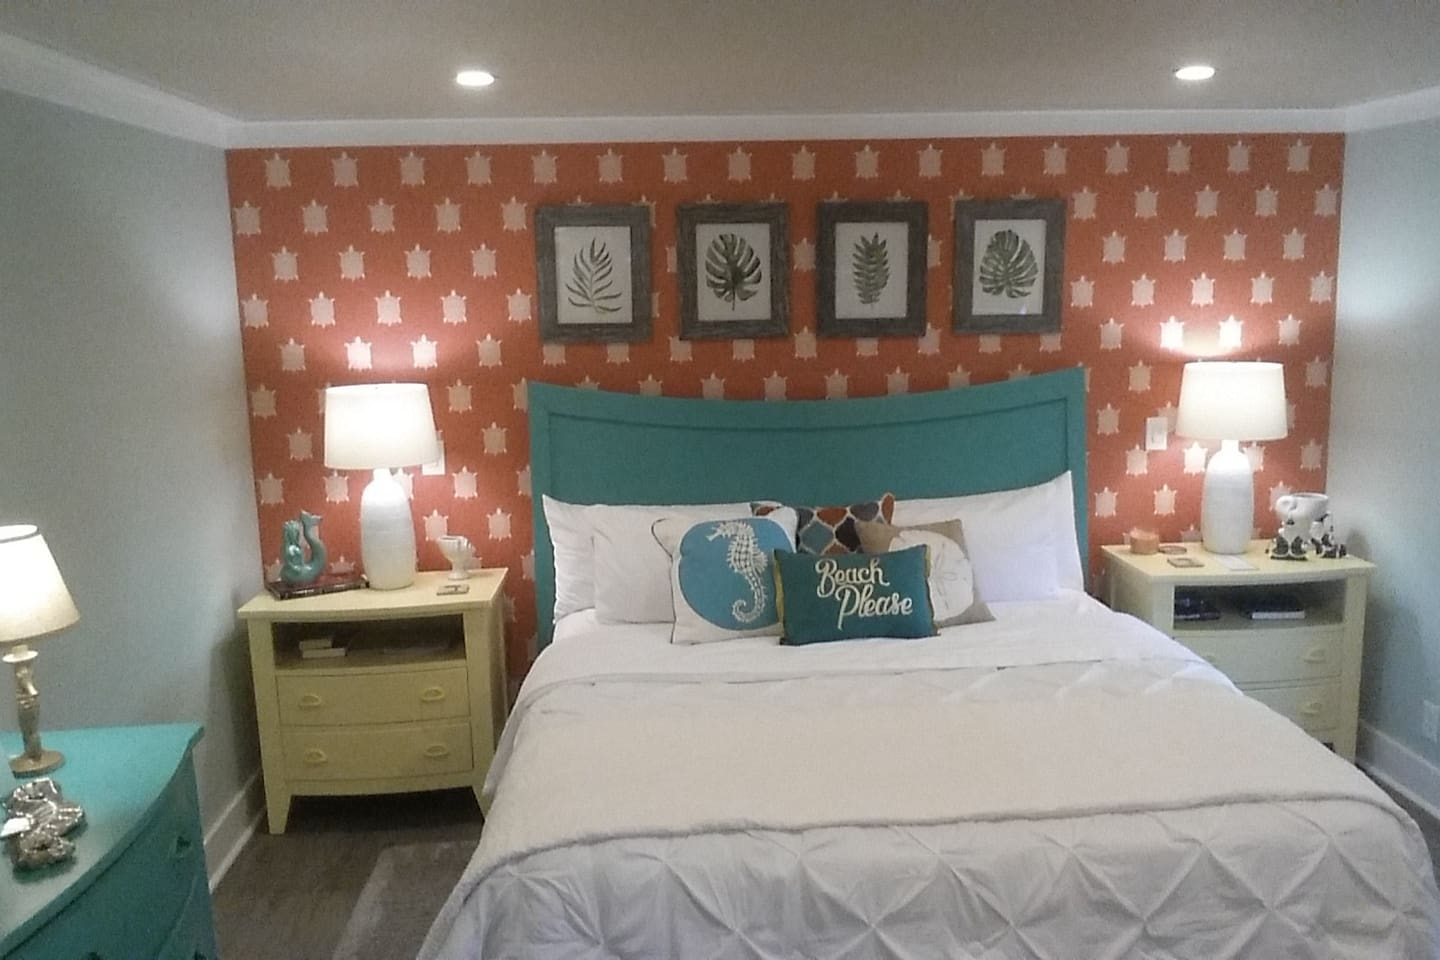 la cabana at mexico beach guest suites for rent in mexico beach